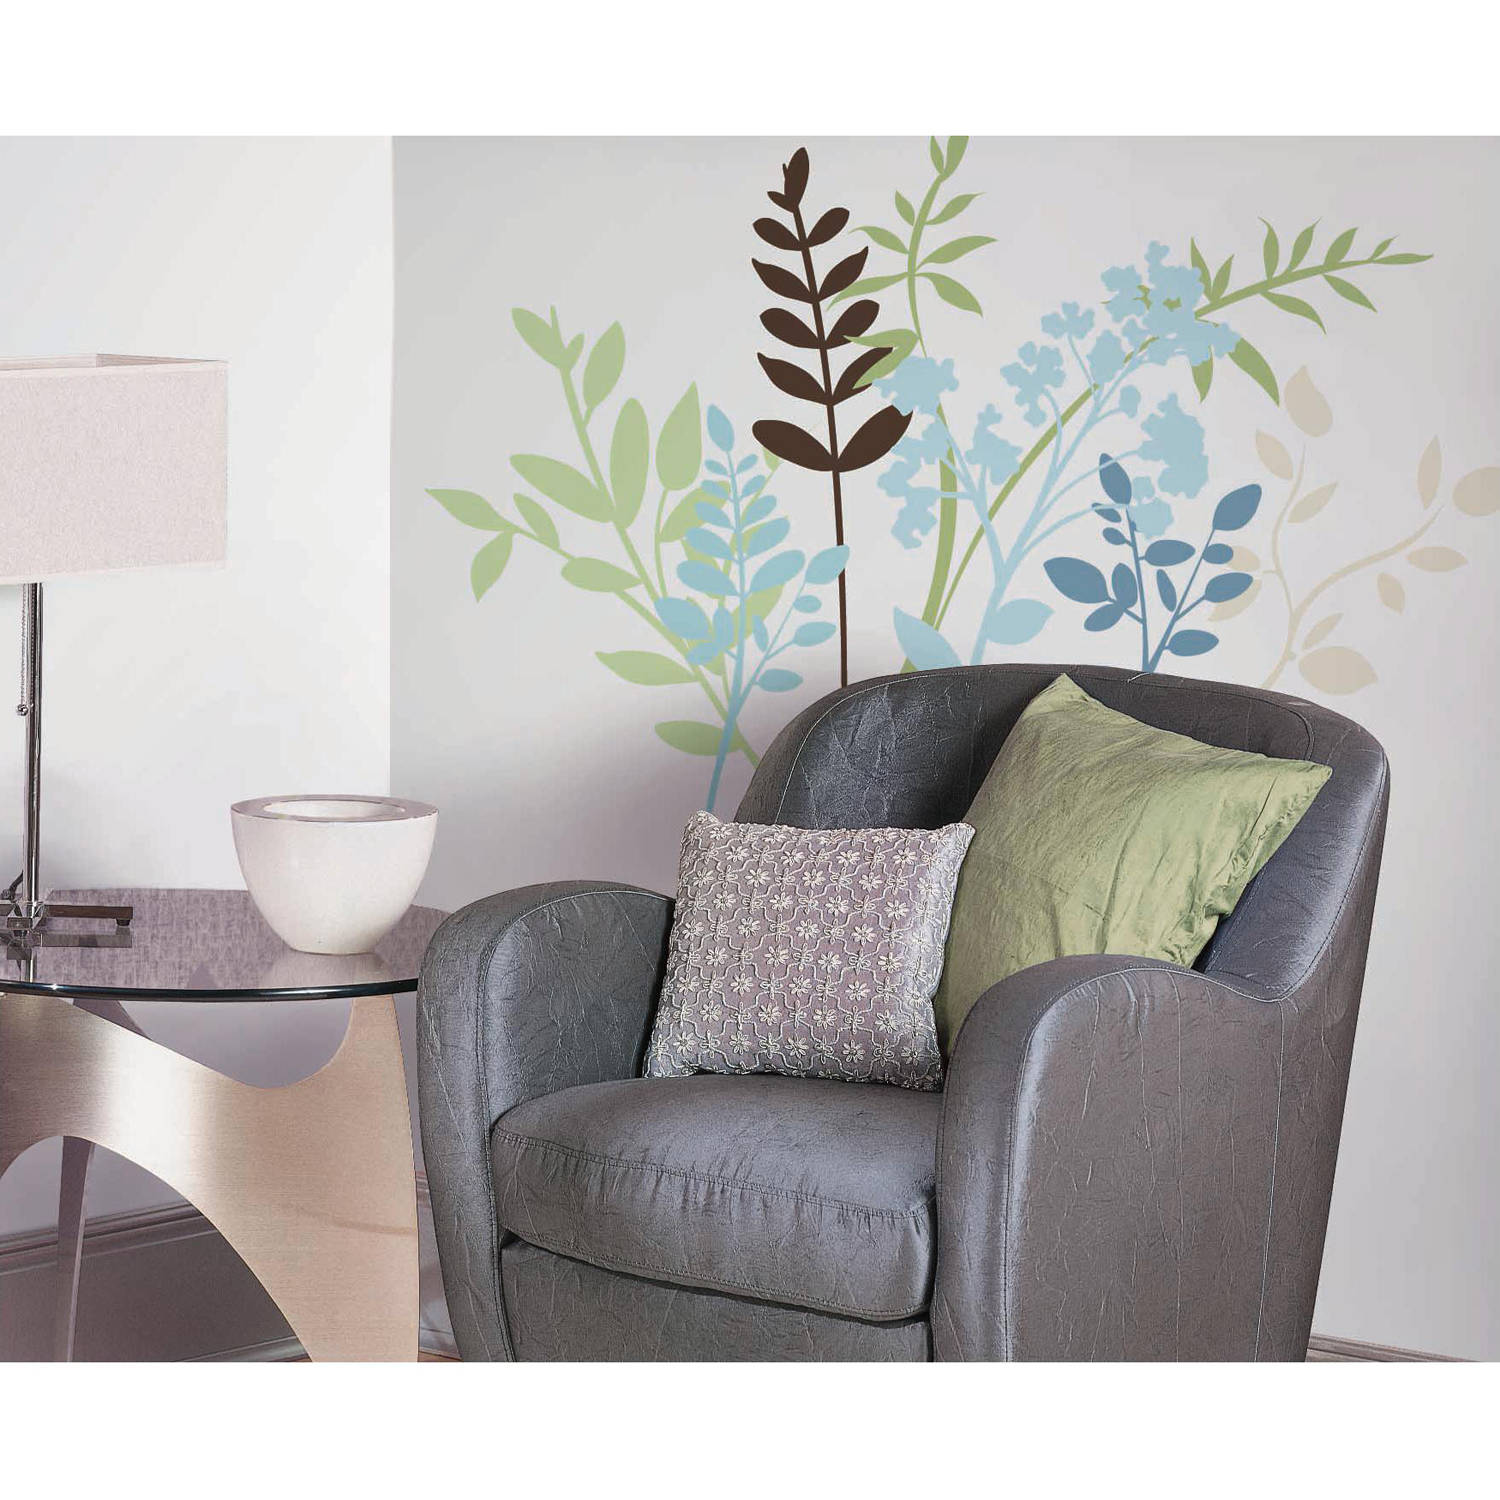 RoomMates Multi Branches Peel and Stick Wall Decals